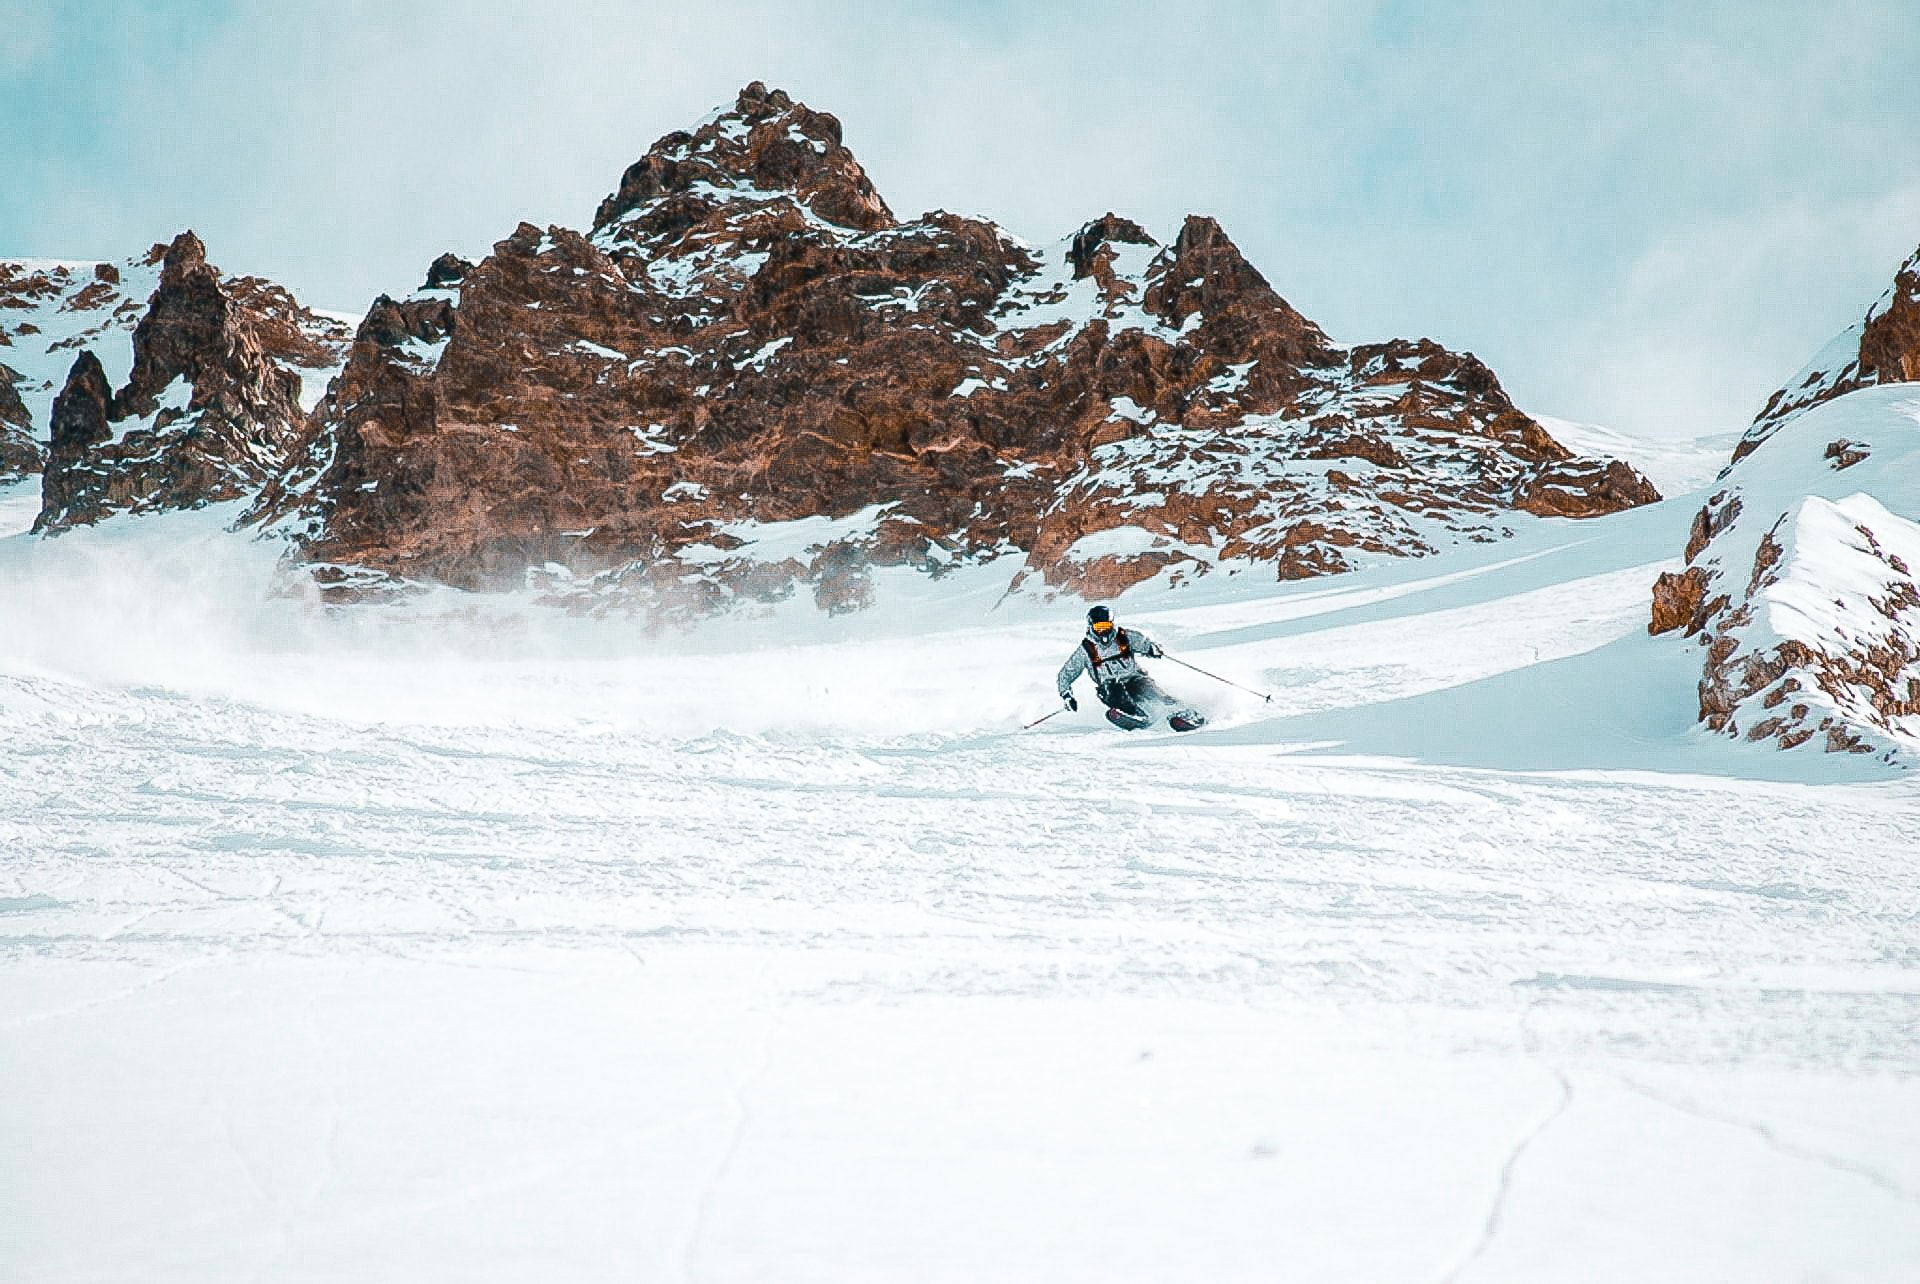 Skier in Chile First Tours